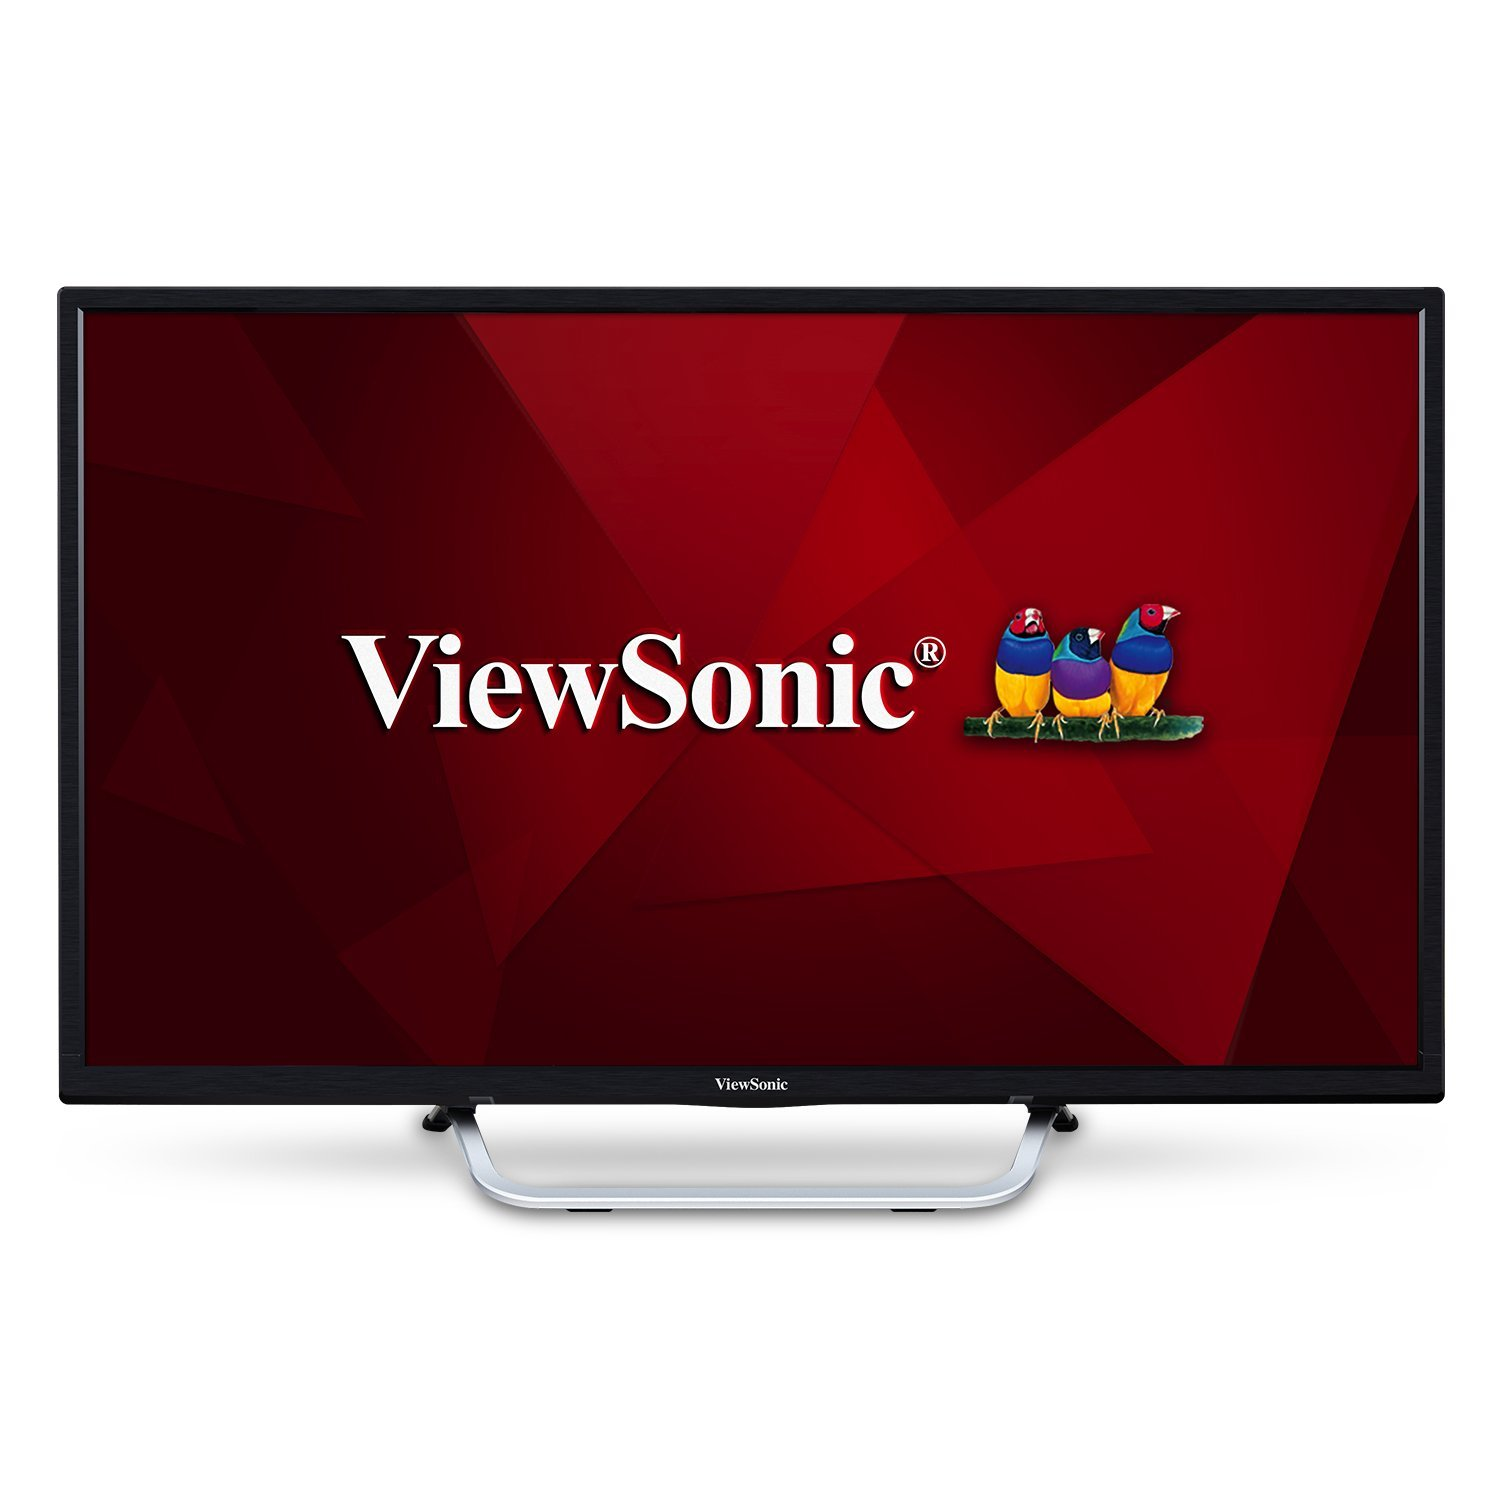 ViewSonic CDE3203 32'' 1080p Commercial LED Display with USB Media Player, HDMI by ViewSonic